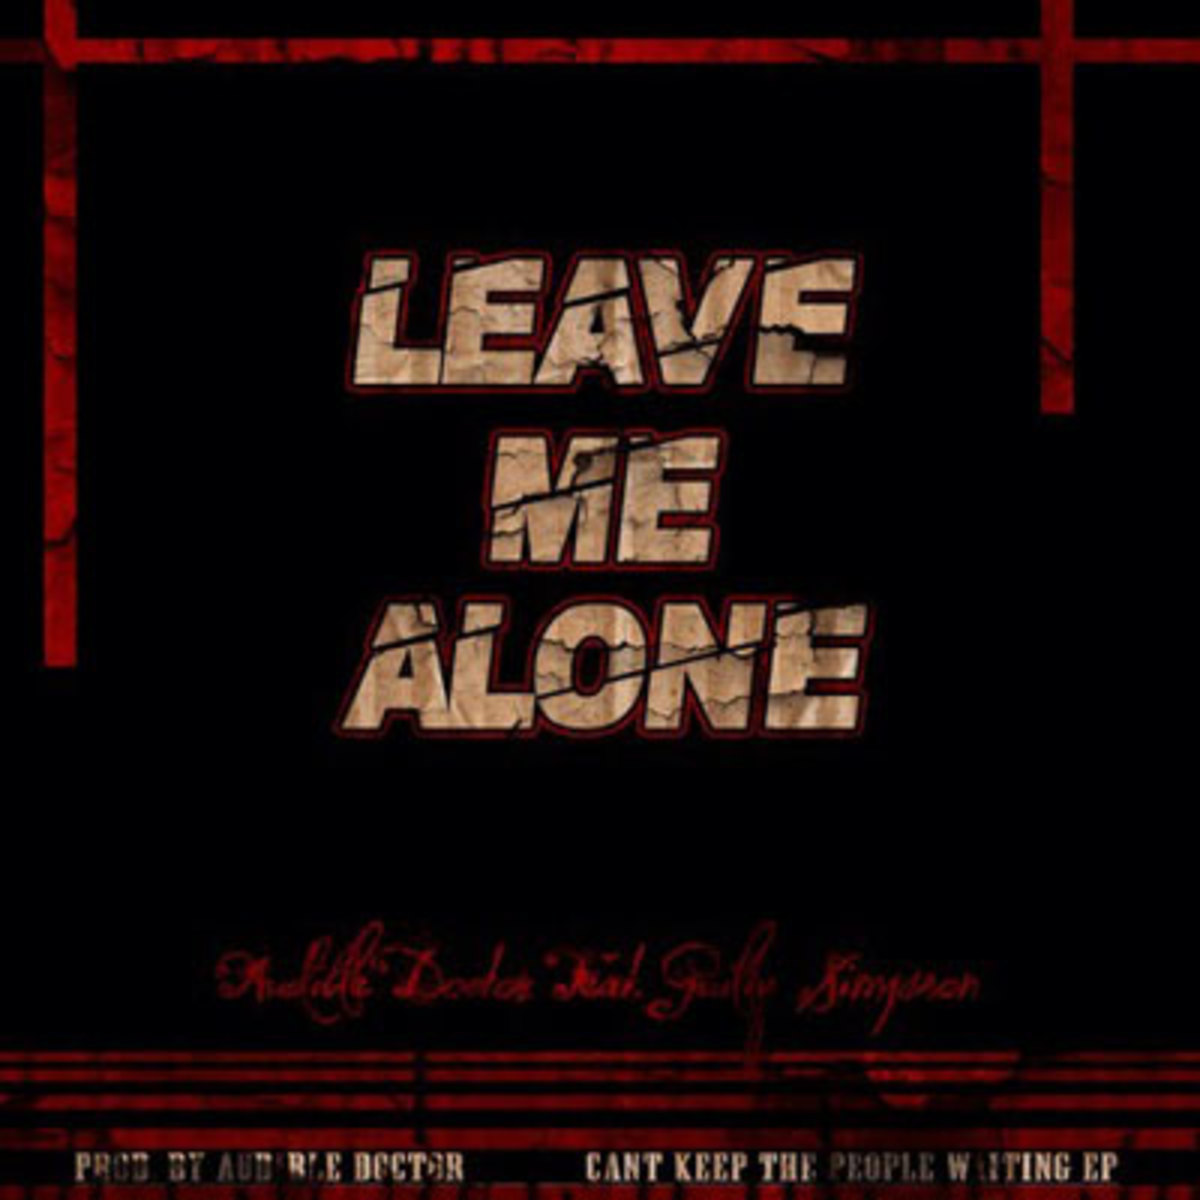 audibledoc-leavemealone.jpg